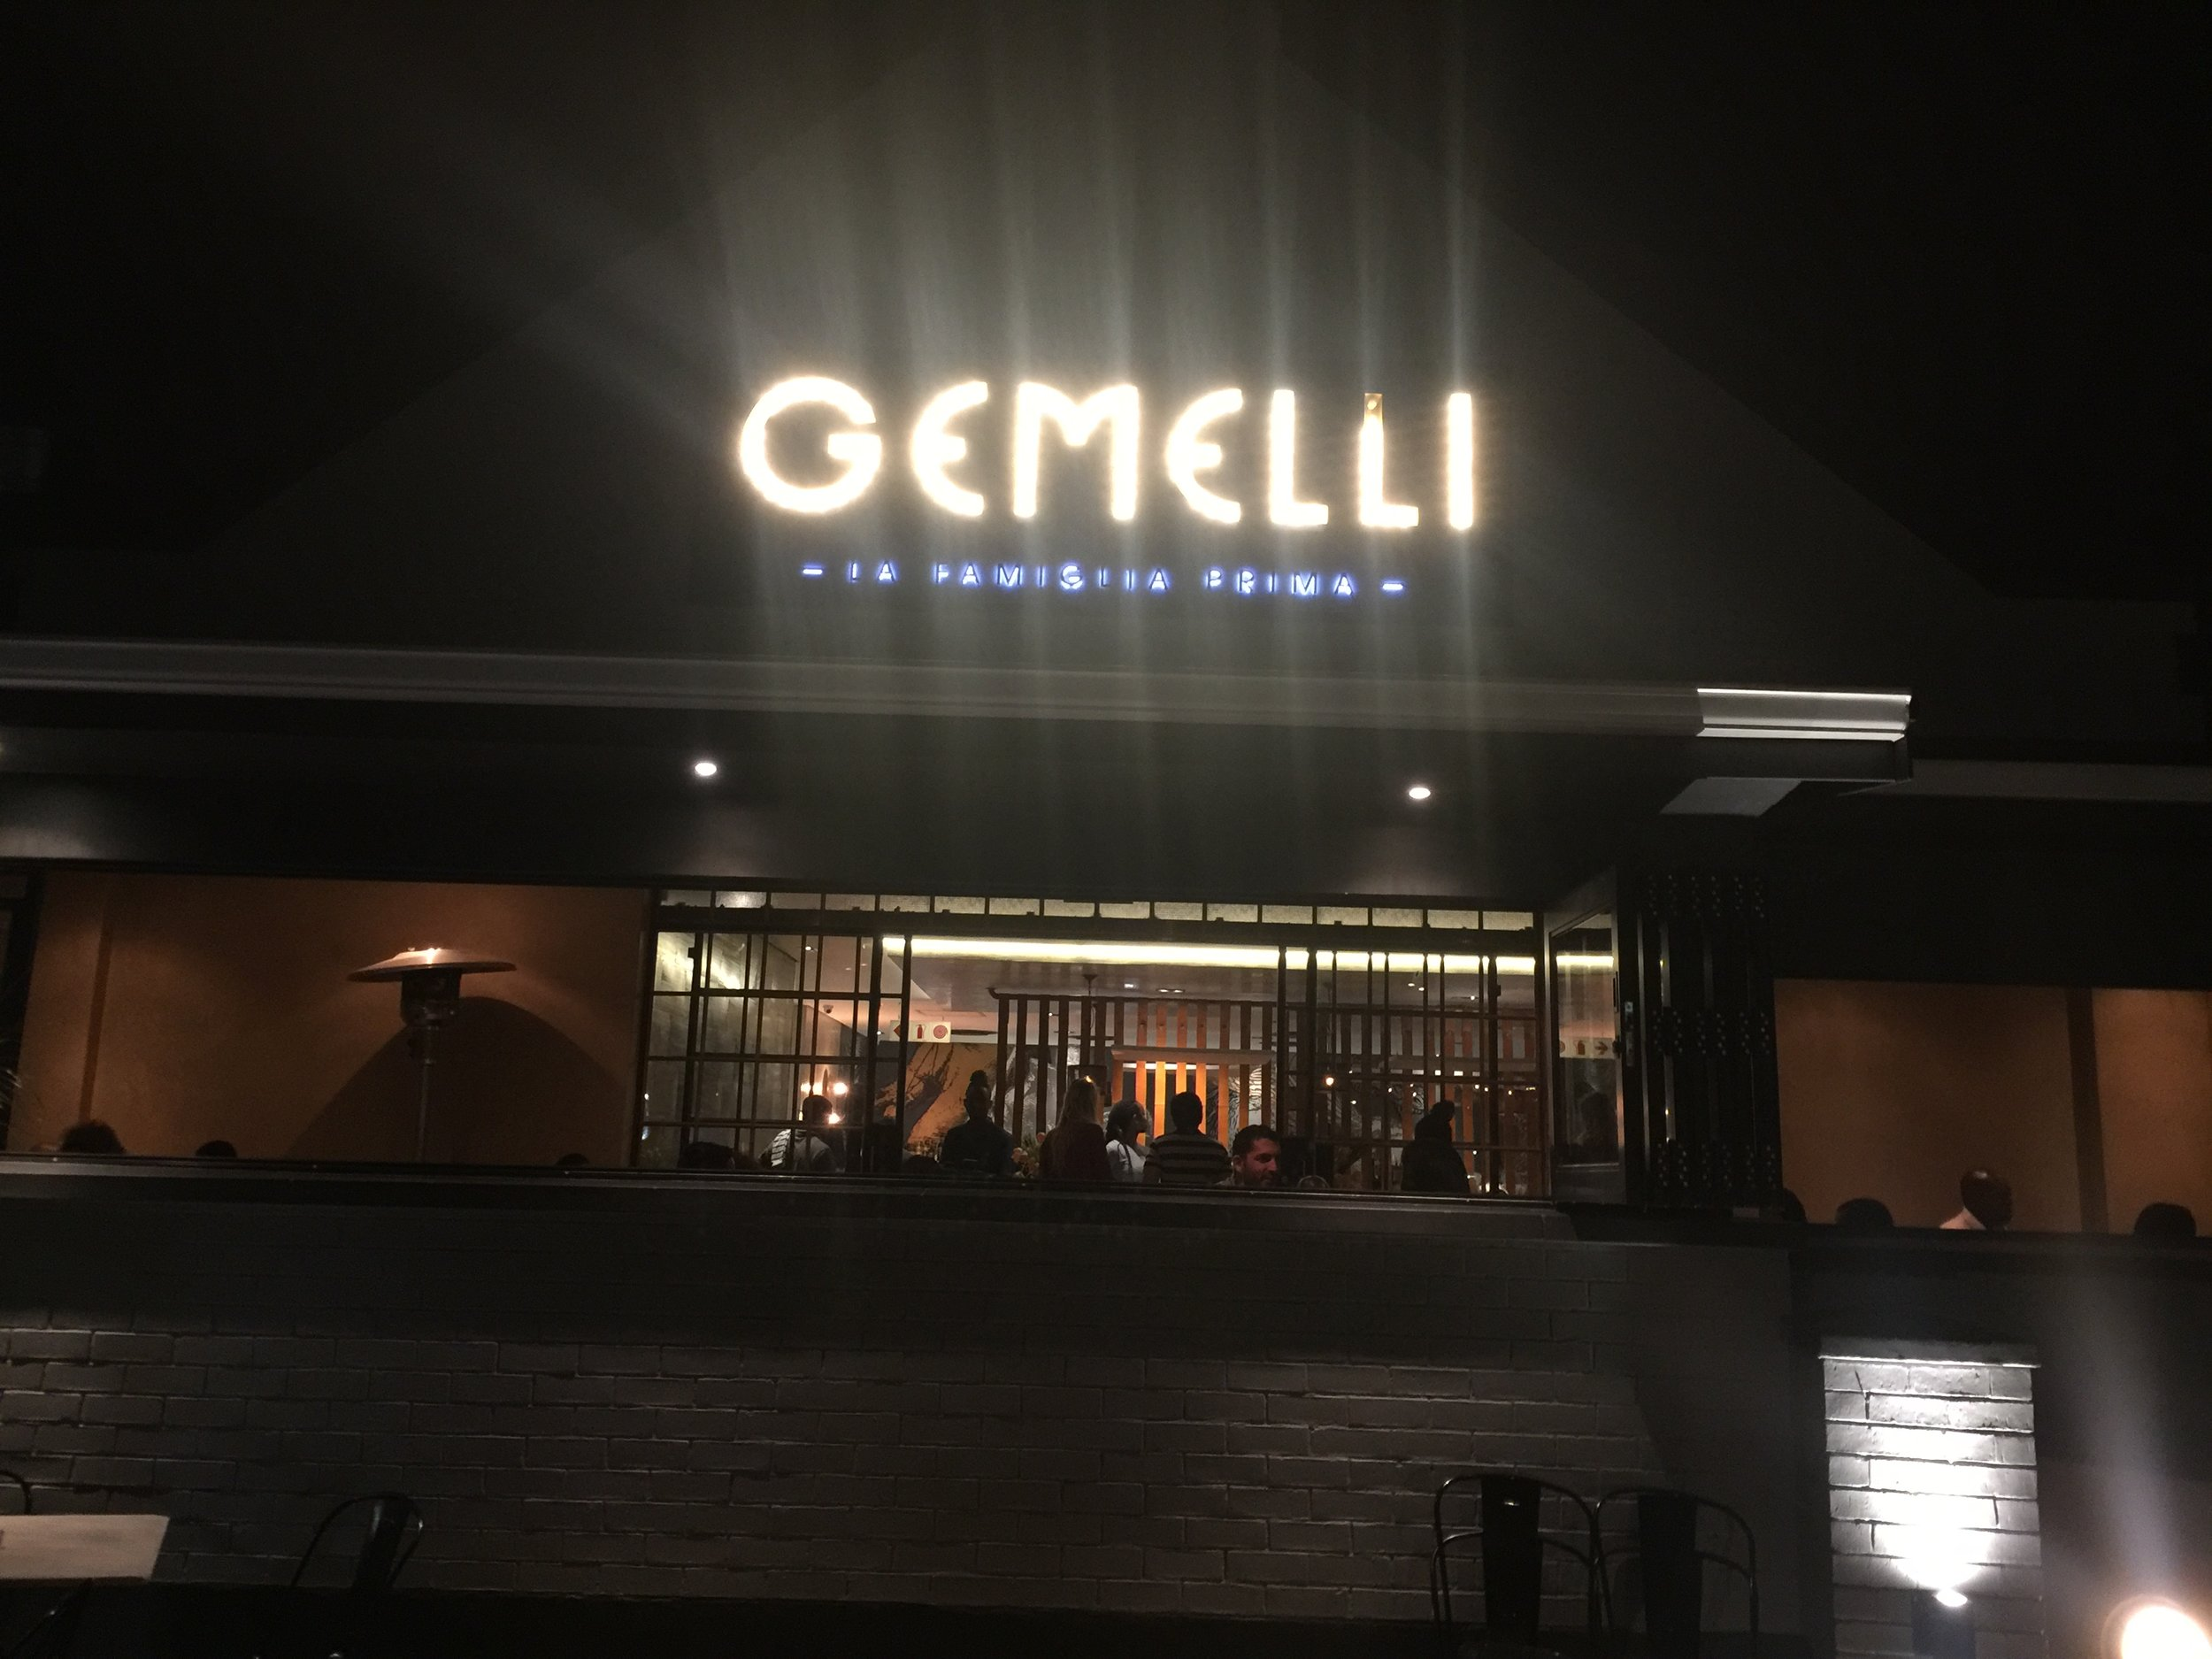 Dinner at Gemellis, Johannesburg, South Africa, September 2017